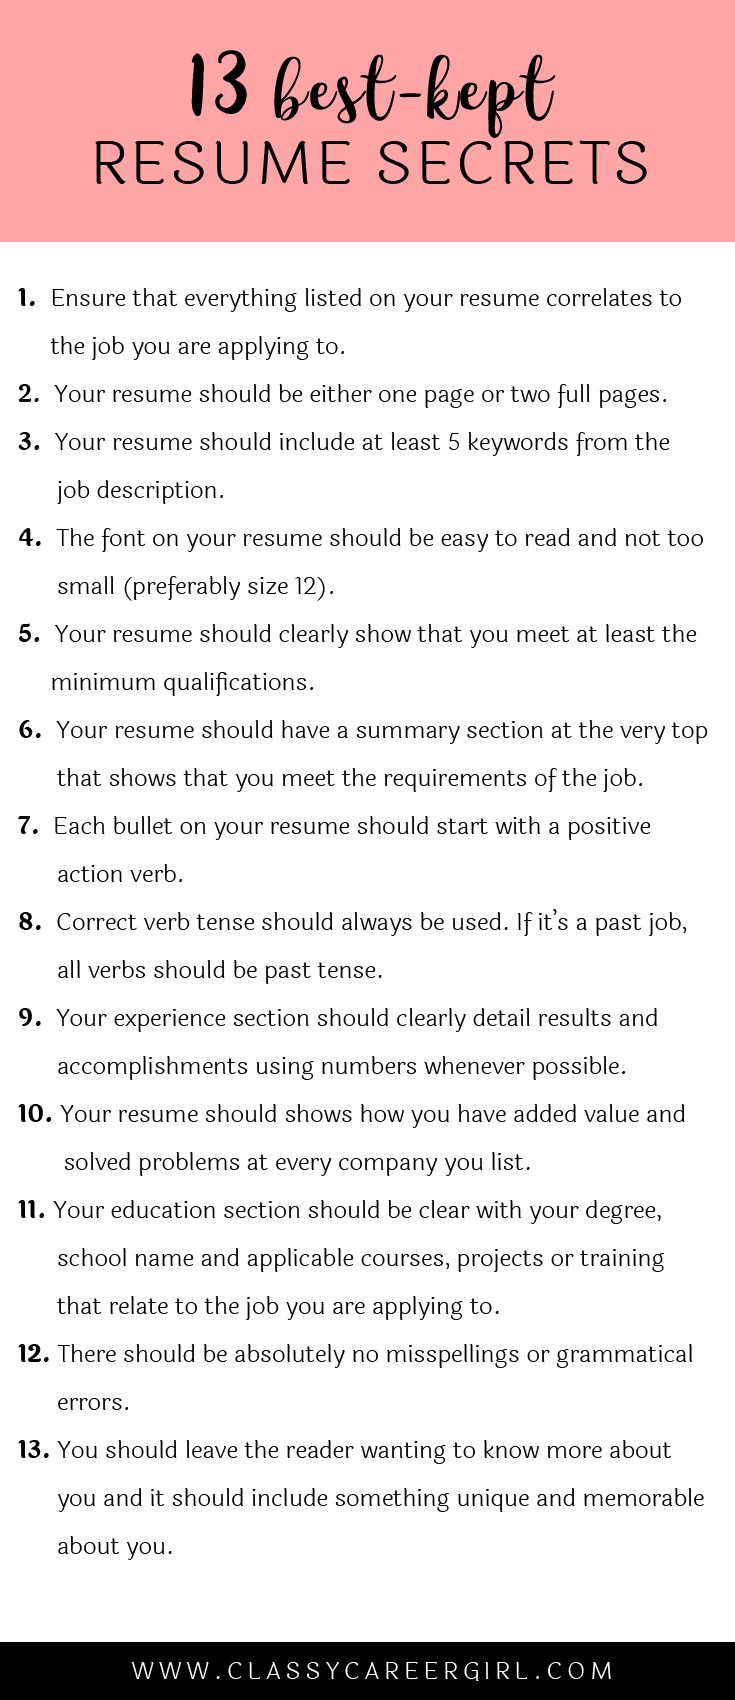 Opposenewapstandardsus  Stunning  Ideas About Resume On Pinterest  Cv Format Resume Cv And  With Exquisite Some Hiring Managers Will Toss Your Resume Out If You Dont Know These  With Comely Lead Teller Resume Also Program Manager Resumes In Addition General Objective Statement For Resume And Resume Examples Sales As Well As Production Artist Resume Additionally Special Ed Teacher Resume From Pinterestcom With Opposenewapstandardsus  Exquisite  Ideas About Resume On Pinterest  Cv Format Resume Cv And  With Comely Some Hiring Managers Will Toss Your Resume Out If You Dont Know These  And Stunning Lead Teller Resume Also Program Manager Resumes In Addition General Objective Statement For Resume From Pinterestcom